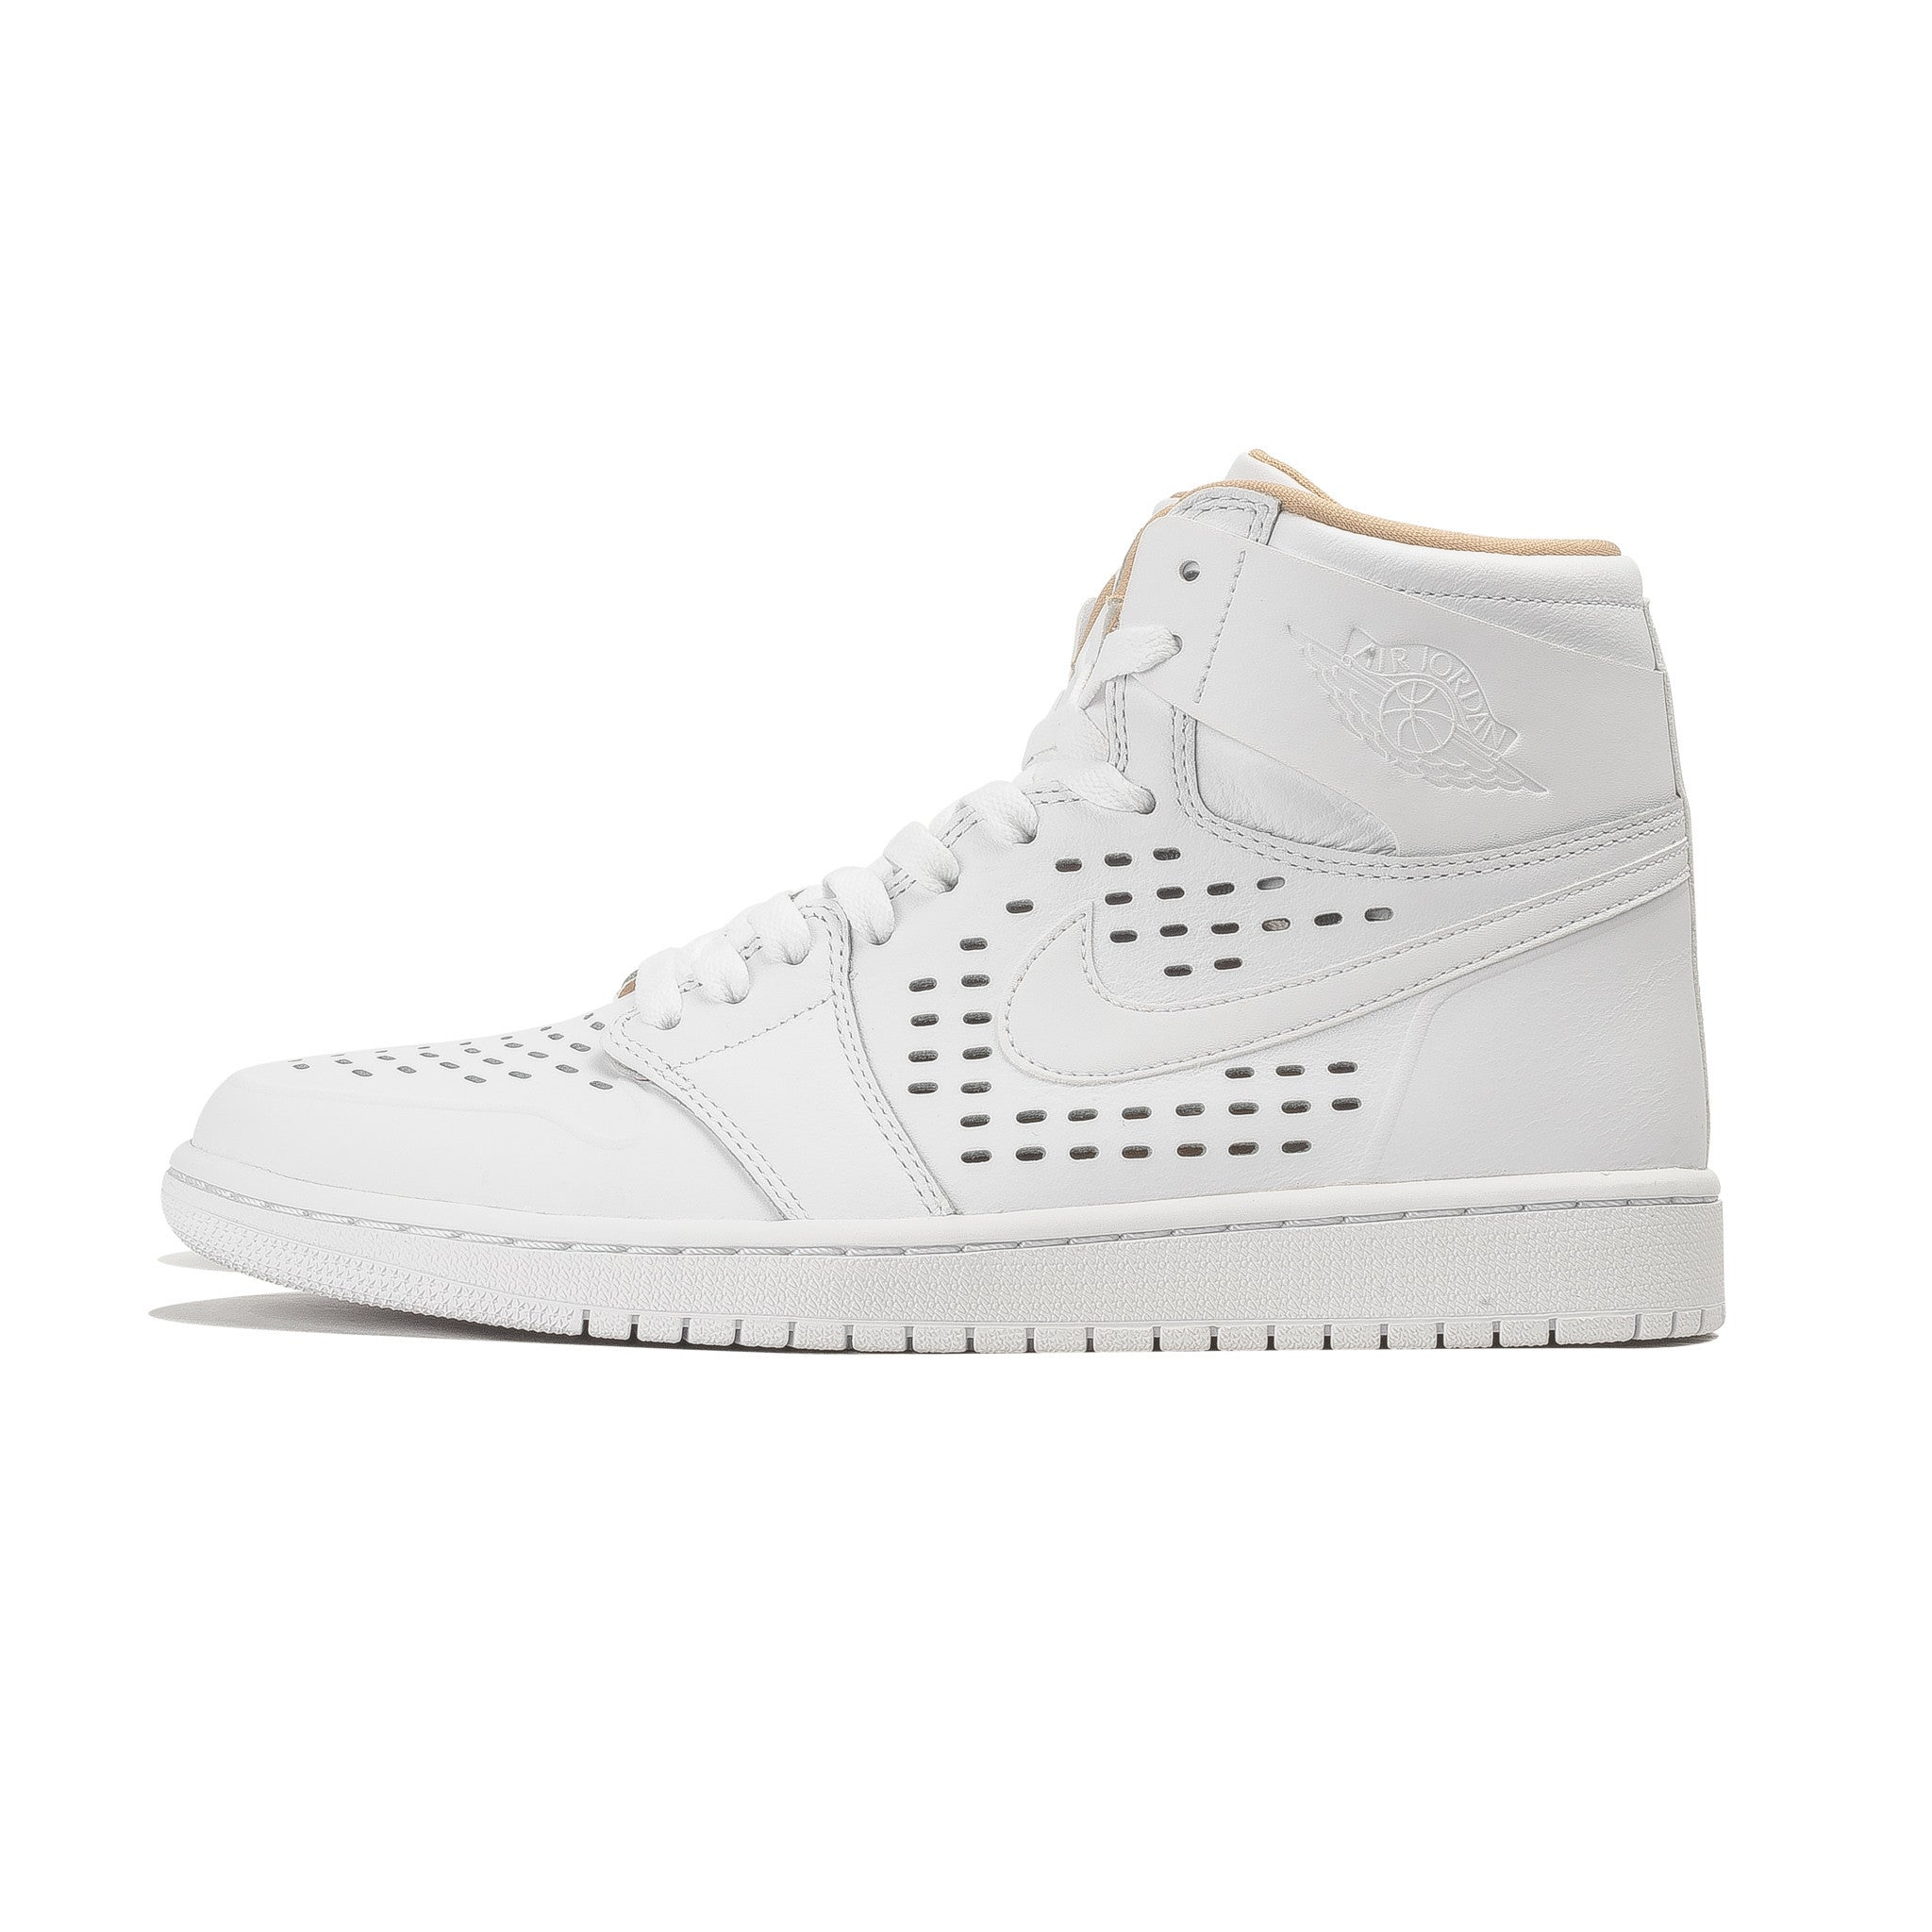 Air Jordan 1 Retro High 845018-142 White